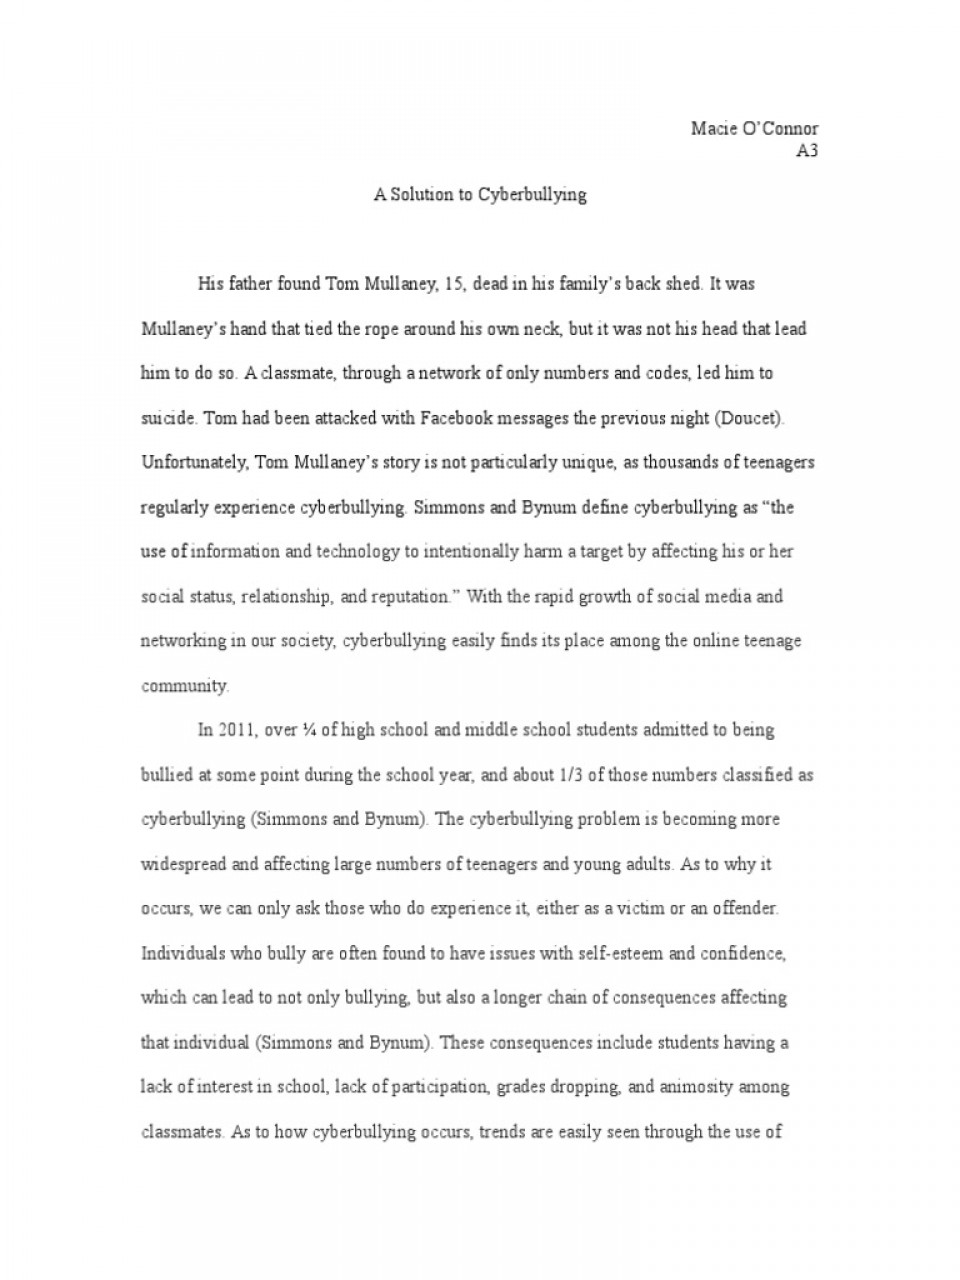 008 Essay Example Bullying Problem Solution Cyberbullying Communication How To Stop In Schools High School Avoid At Deal With Ways Prevent Awful Anti Cyber Argumentative Topics Thesis 960